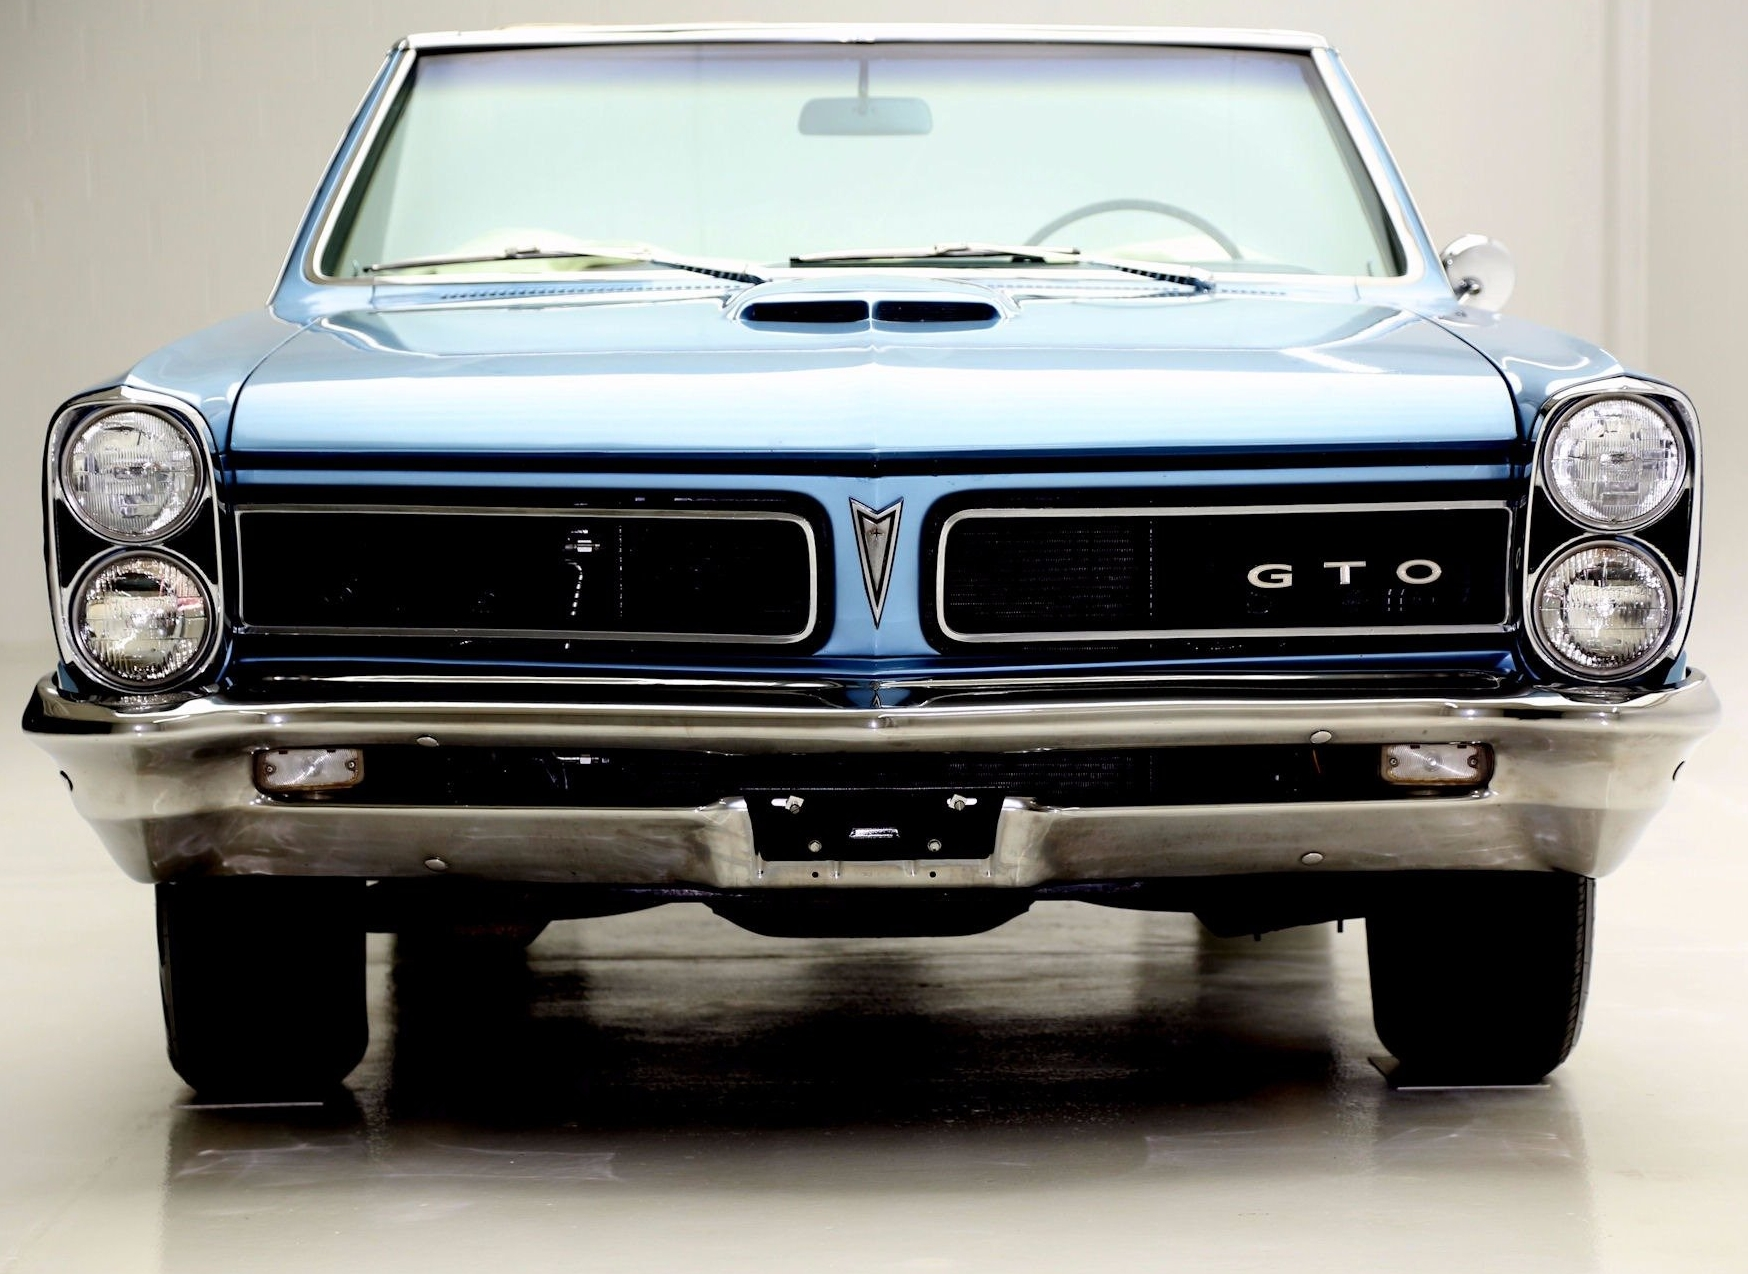 hight resolution of the gto was the cornerstone of pontiac performance it was a car that created the muscle car segment and hit a bullseye with the wants and needs of the